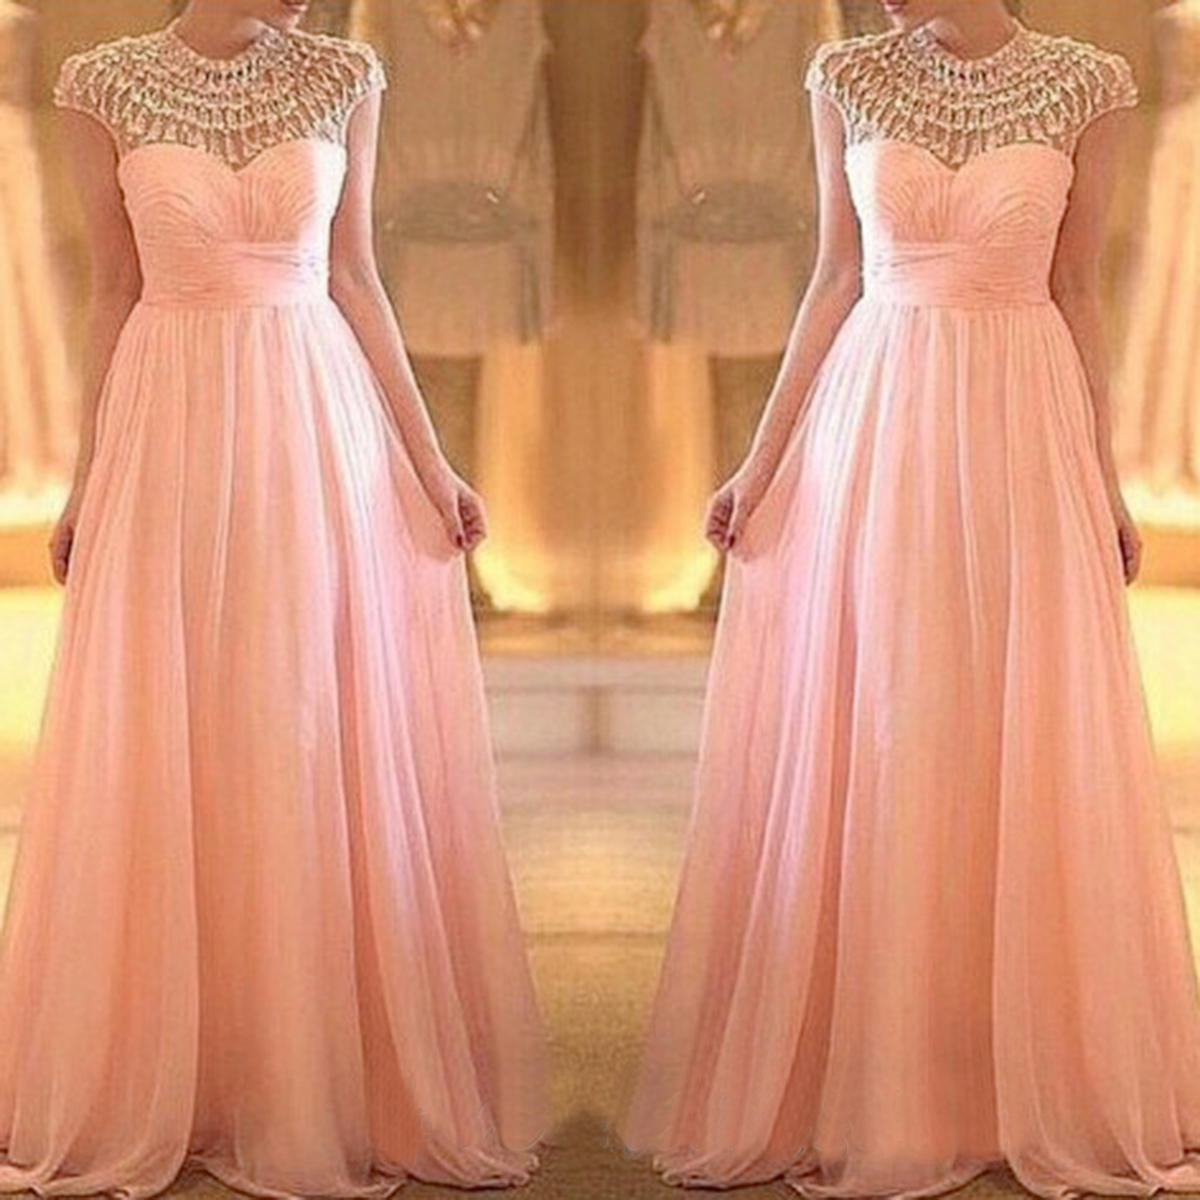 Modest Prom Dresses, Blush Pink Prom Dress, Long Prom Dresses ...